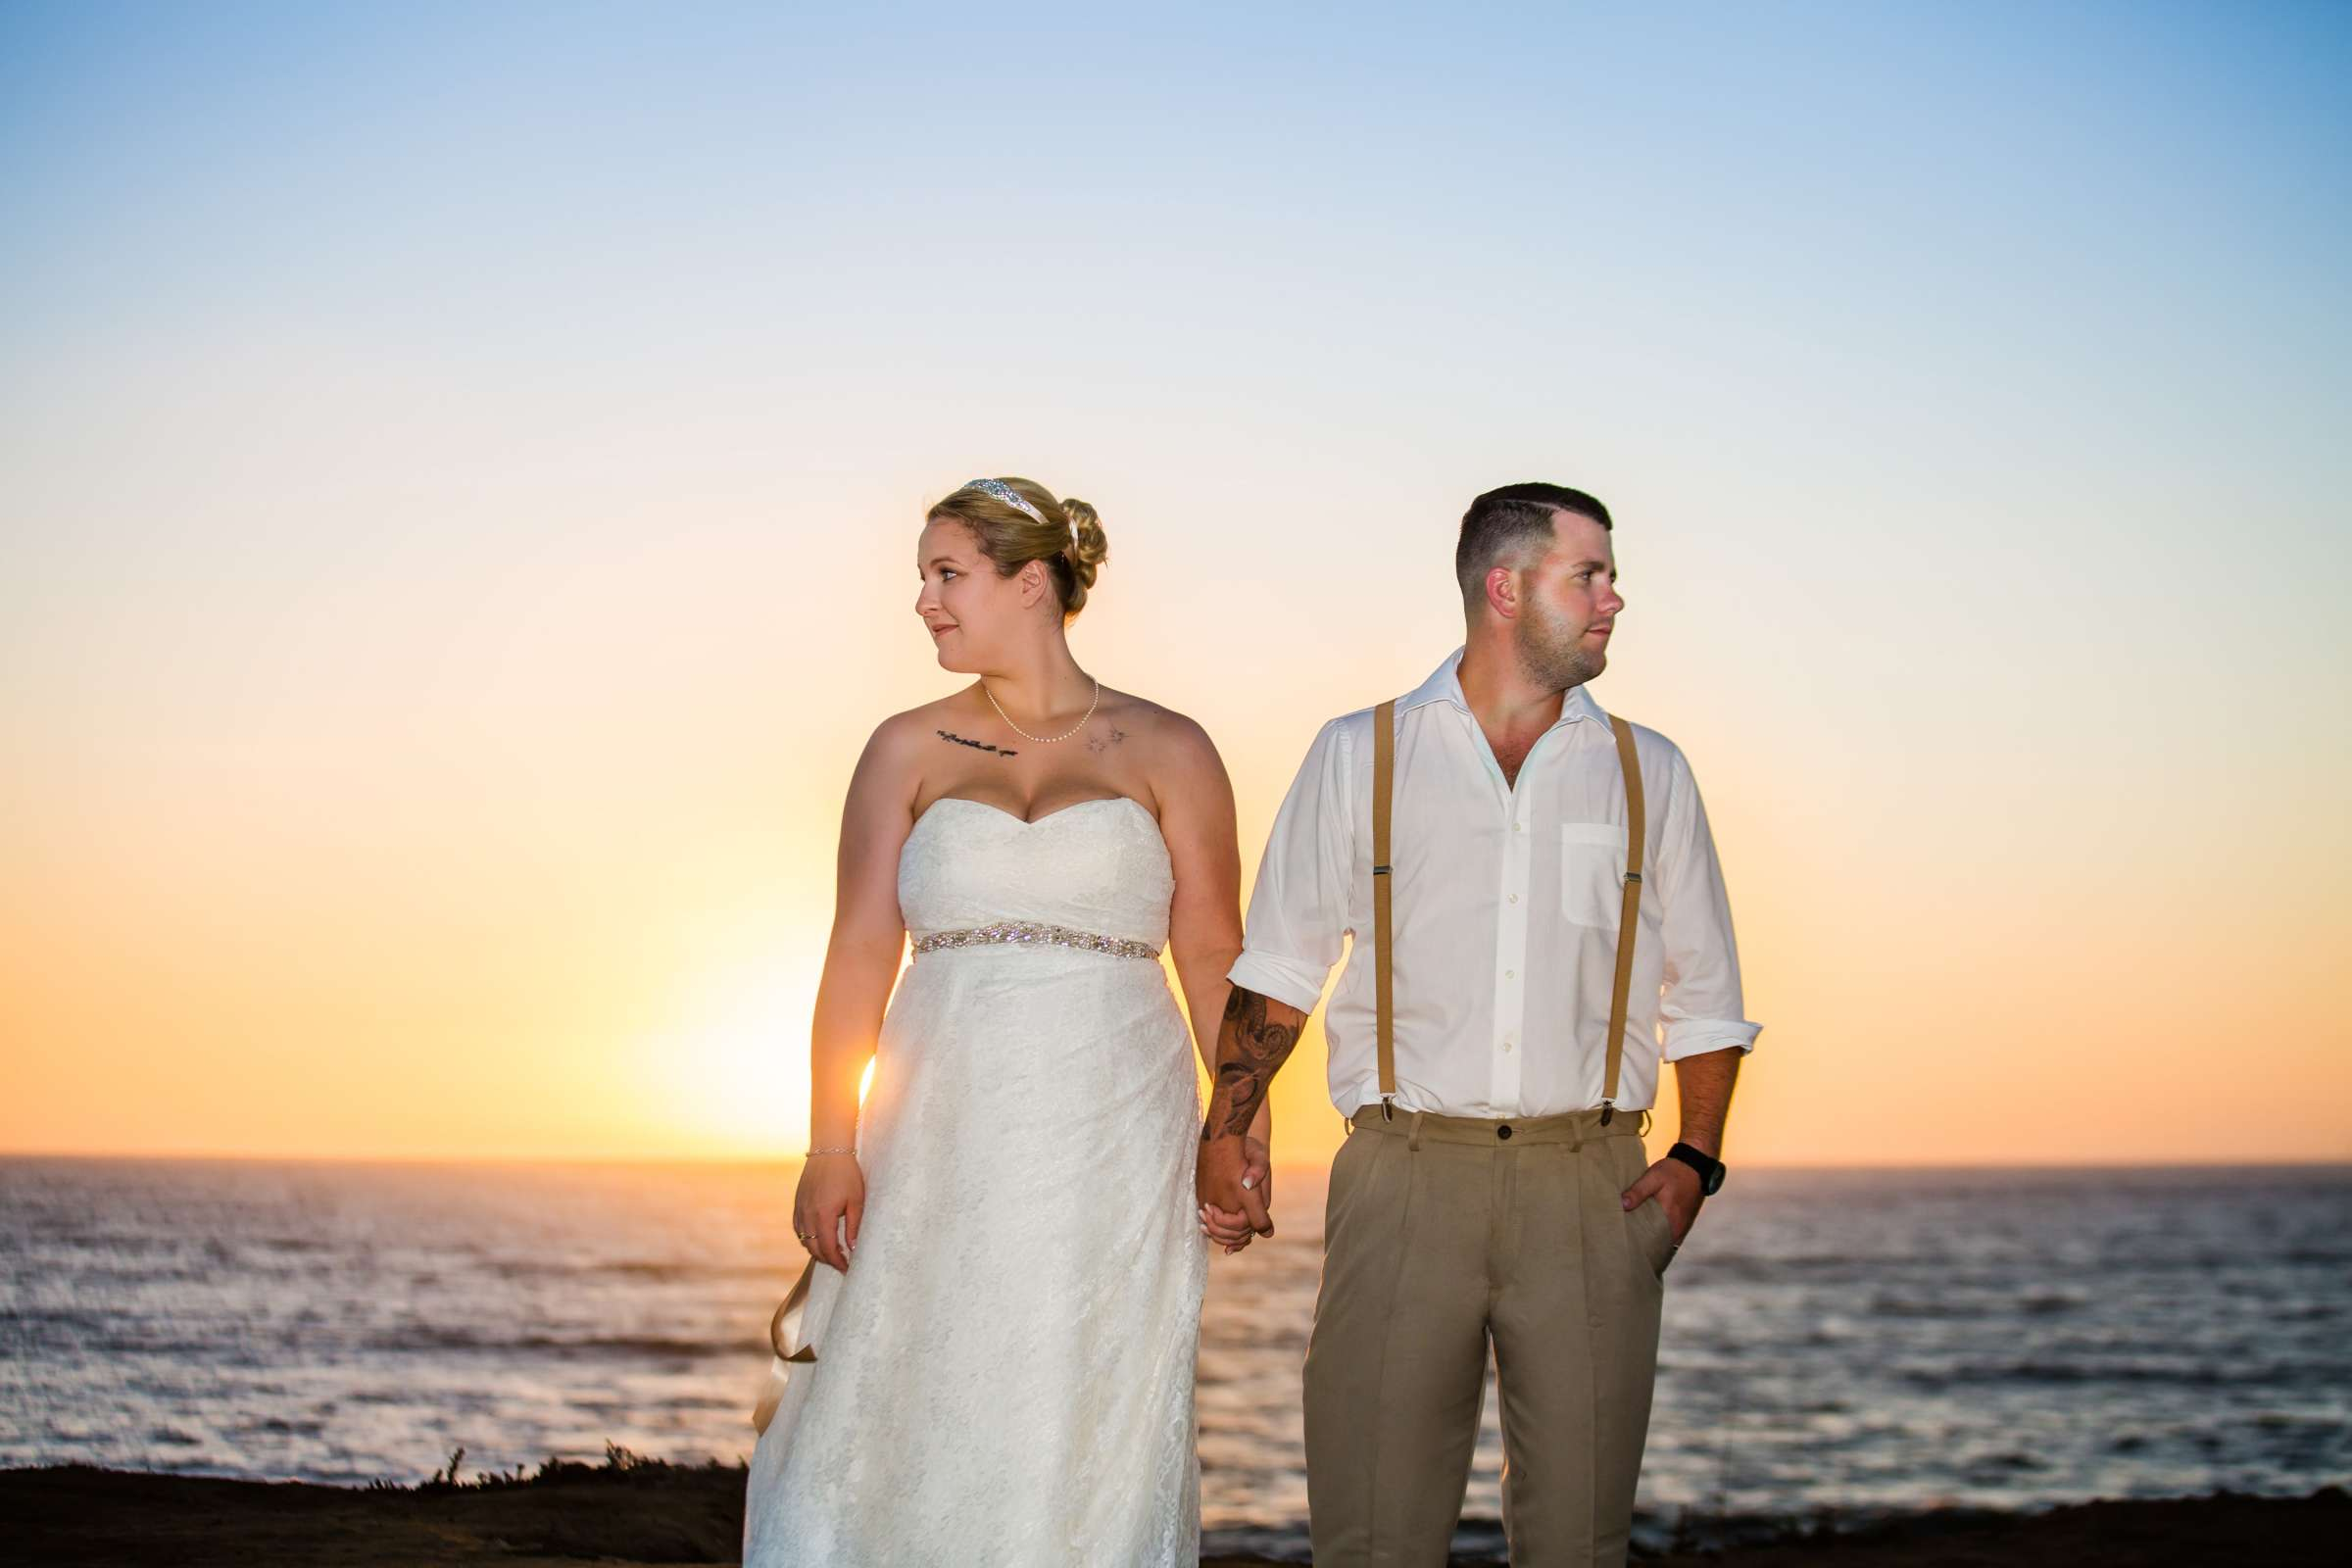 The Inn at Sunset Cliffs Wedding, Melinda and Benjamin Wedding Photo #80 by True Photography